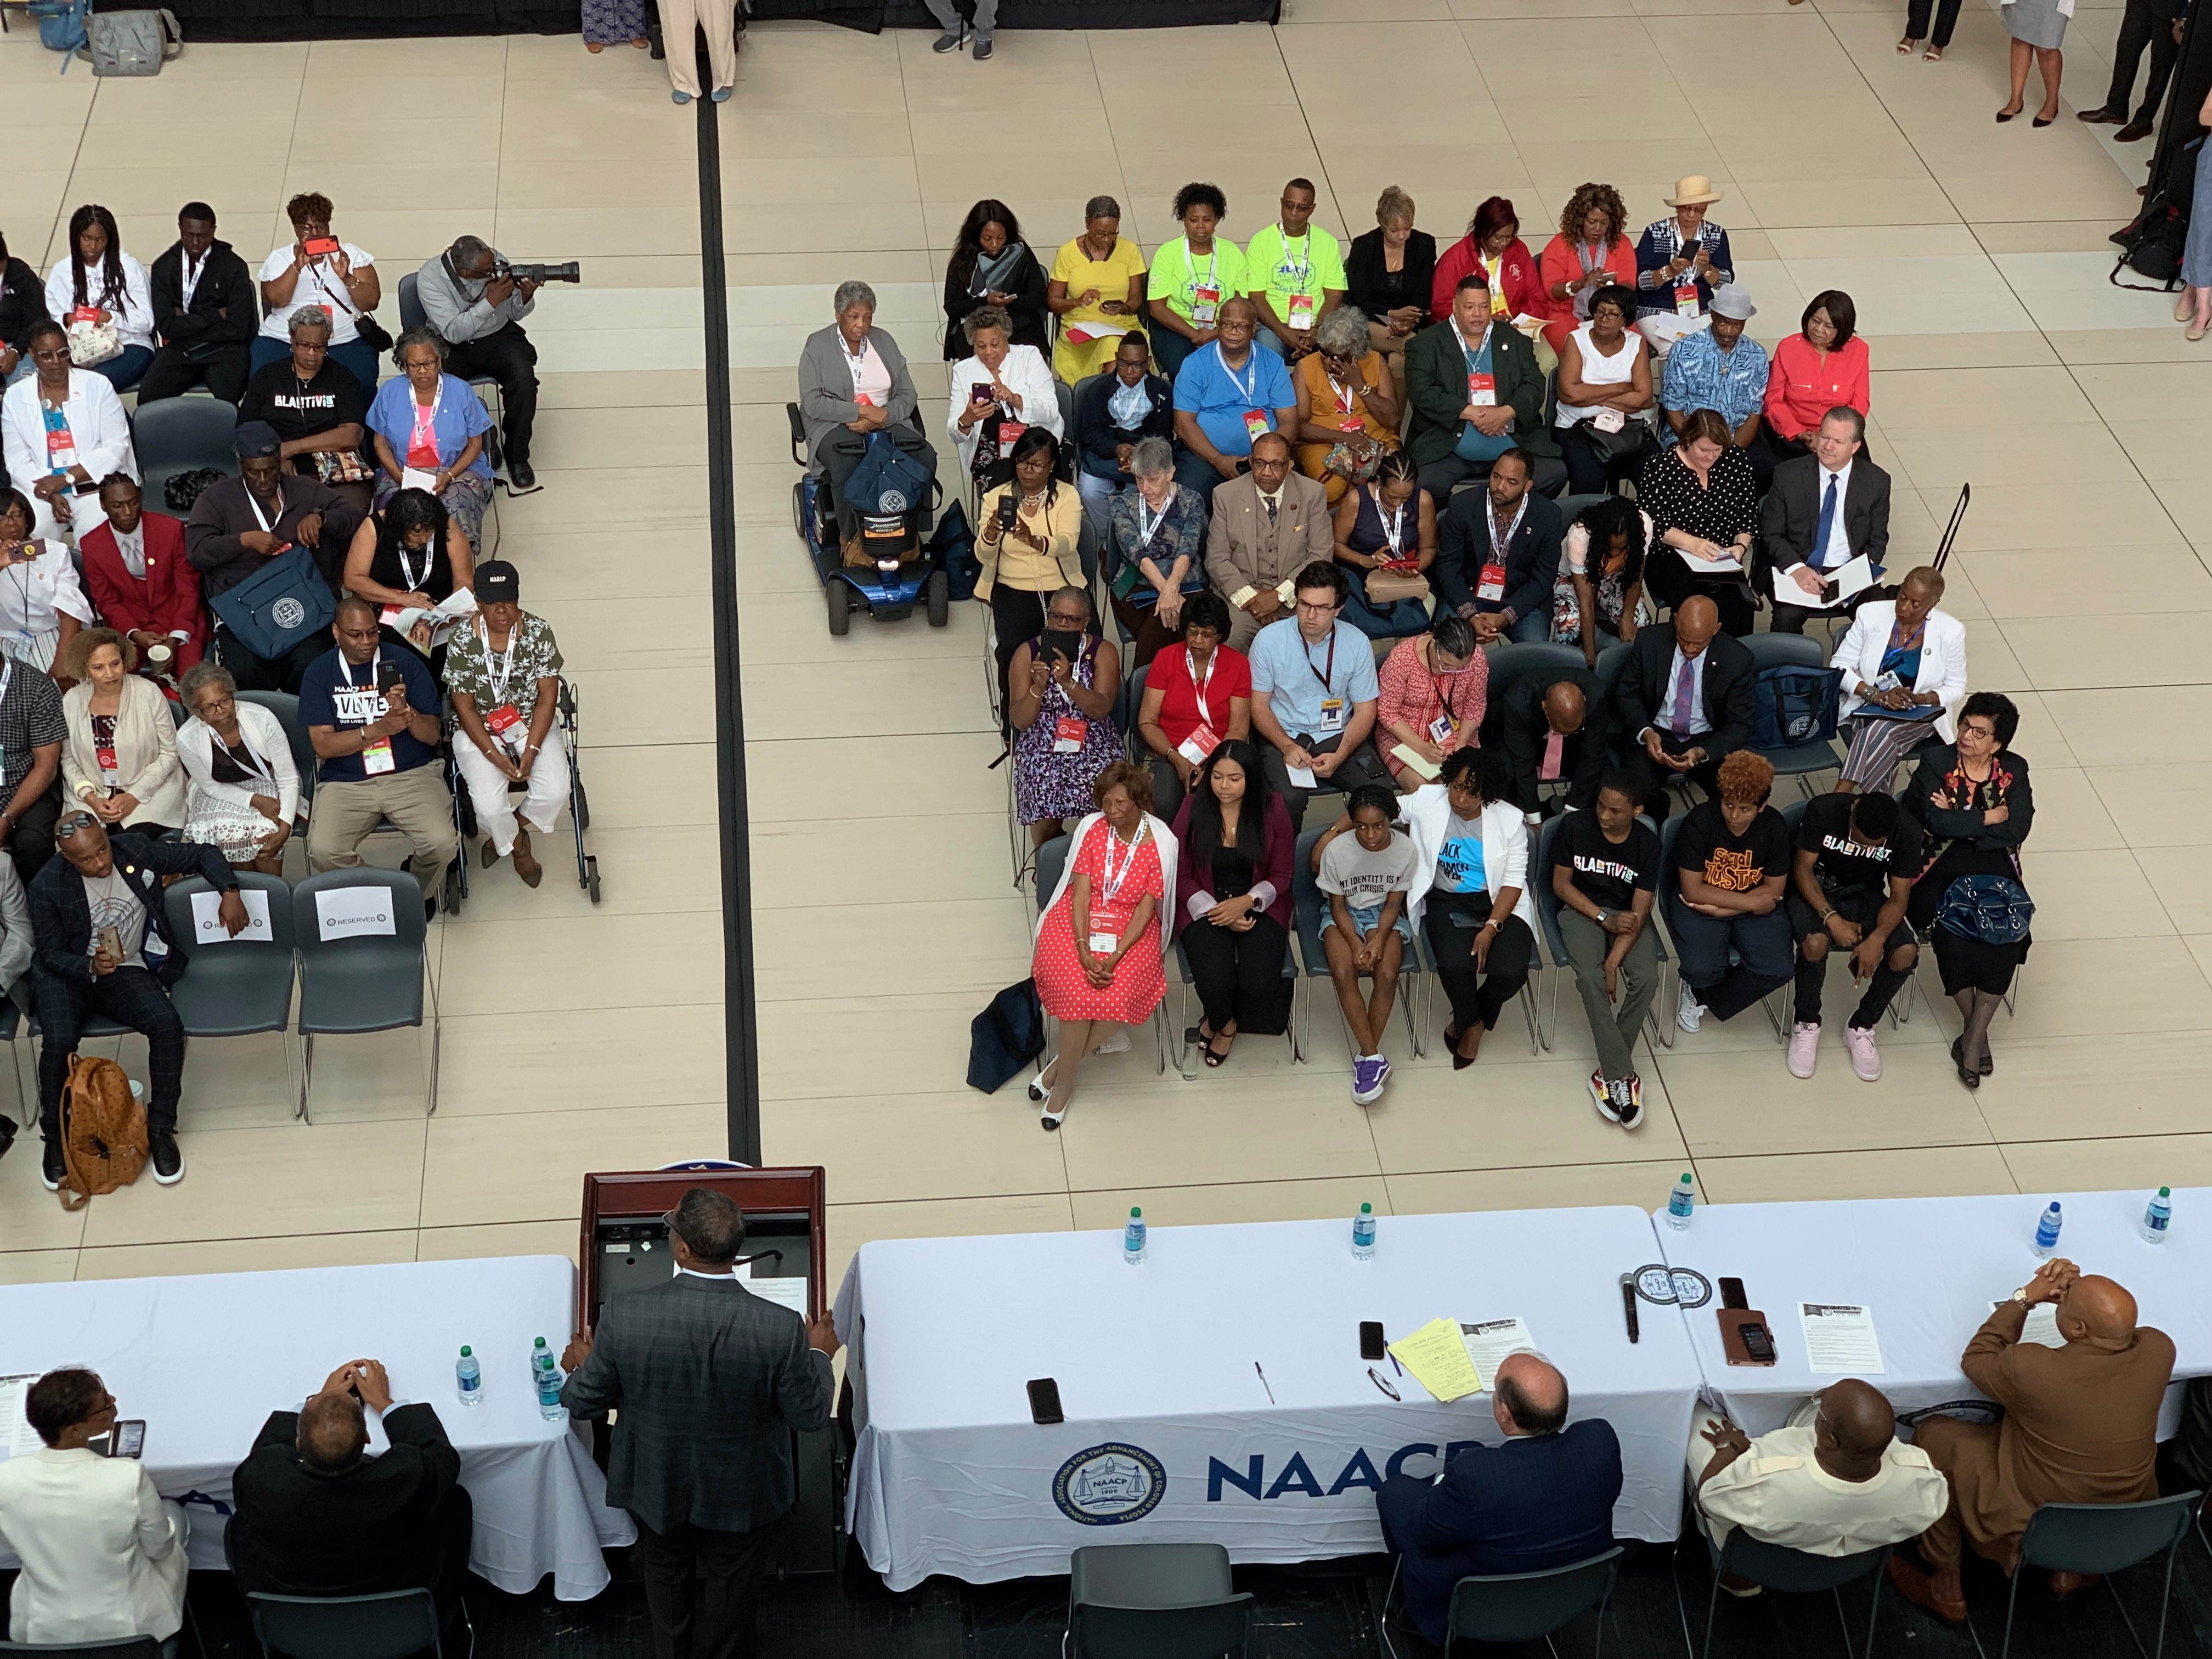 NAACP President Derrick Johnson speaks at the opening press conference of the association's 110th annual national convention at the Cobo Center in Detroit, Michigan, on Saturday, July 20, 2019.